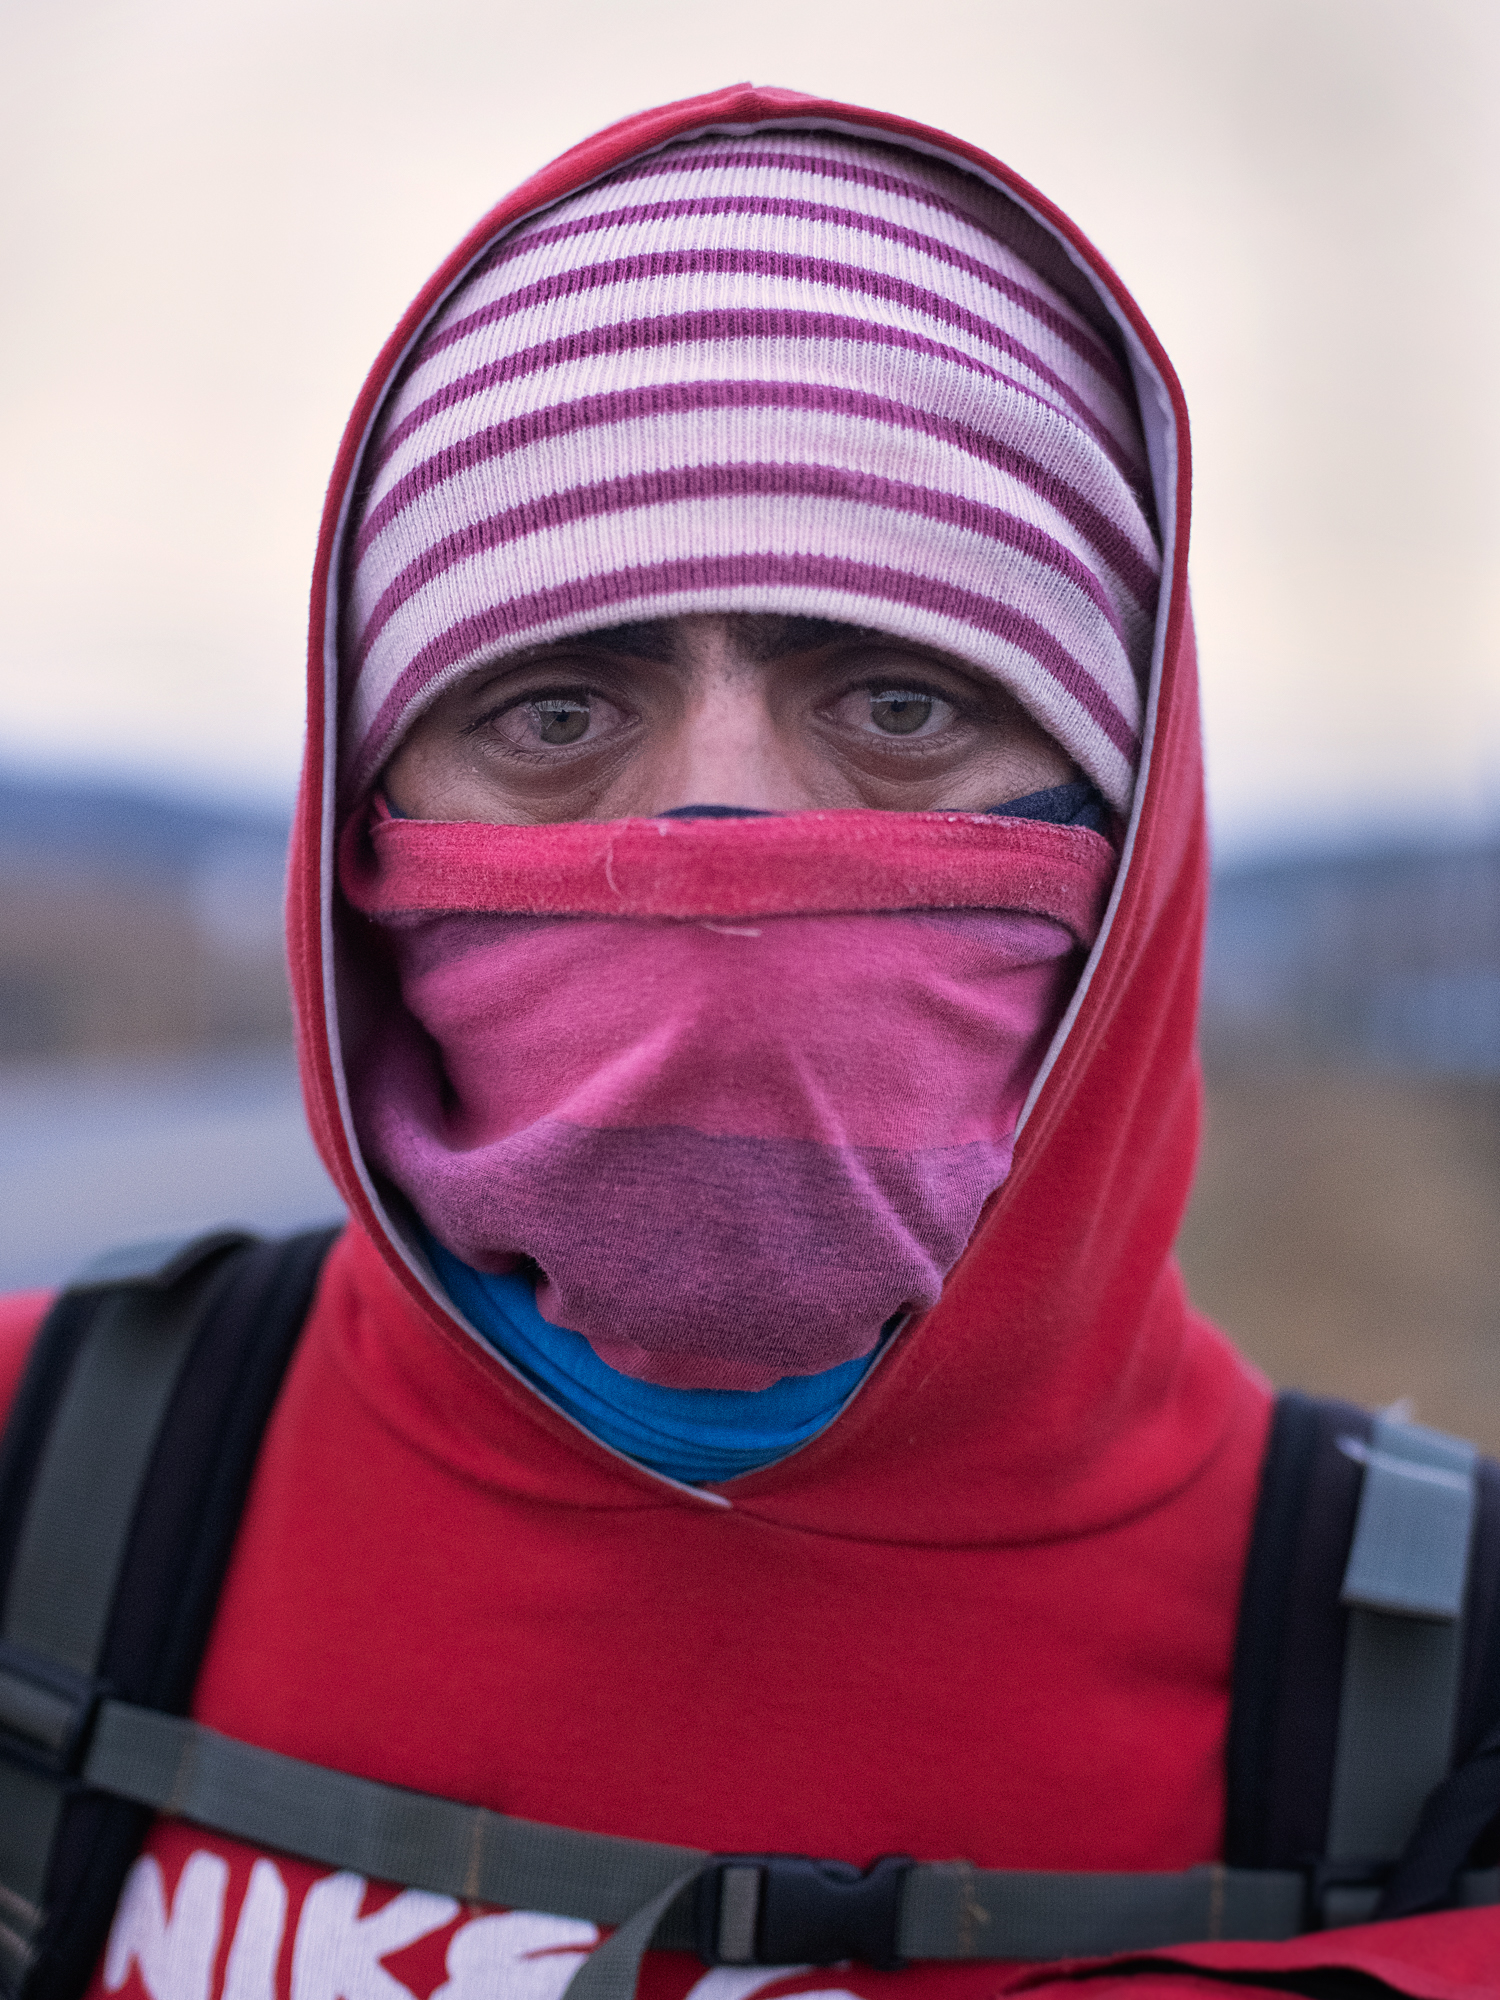 José Arias had walked 3 days to reach the Berlín highland, the highest and coldest point in the migrant route out of Venezuela.